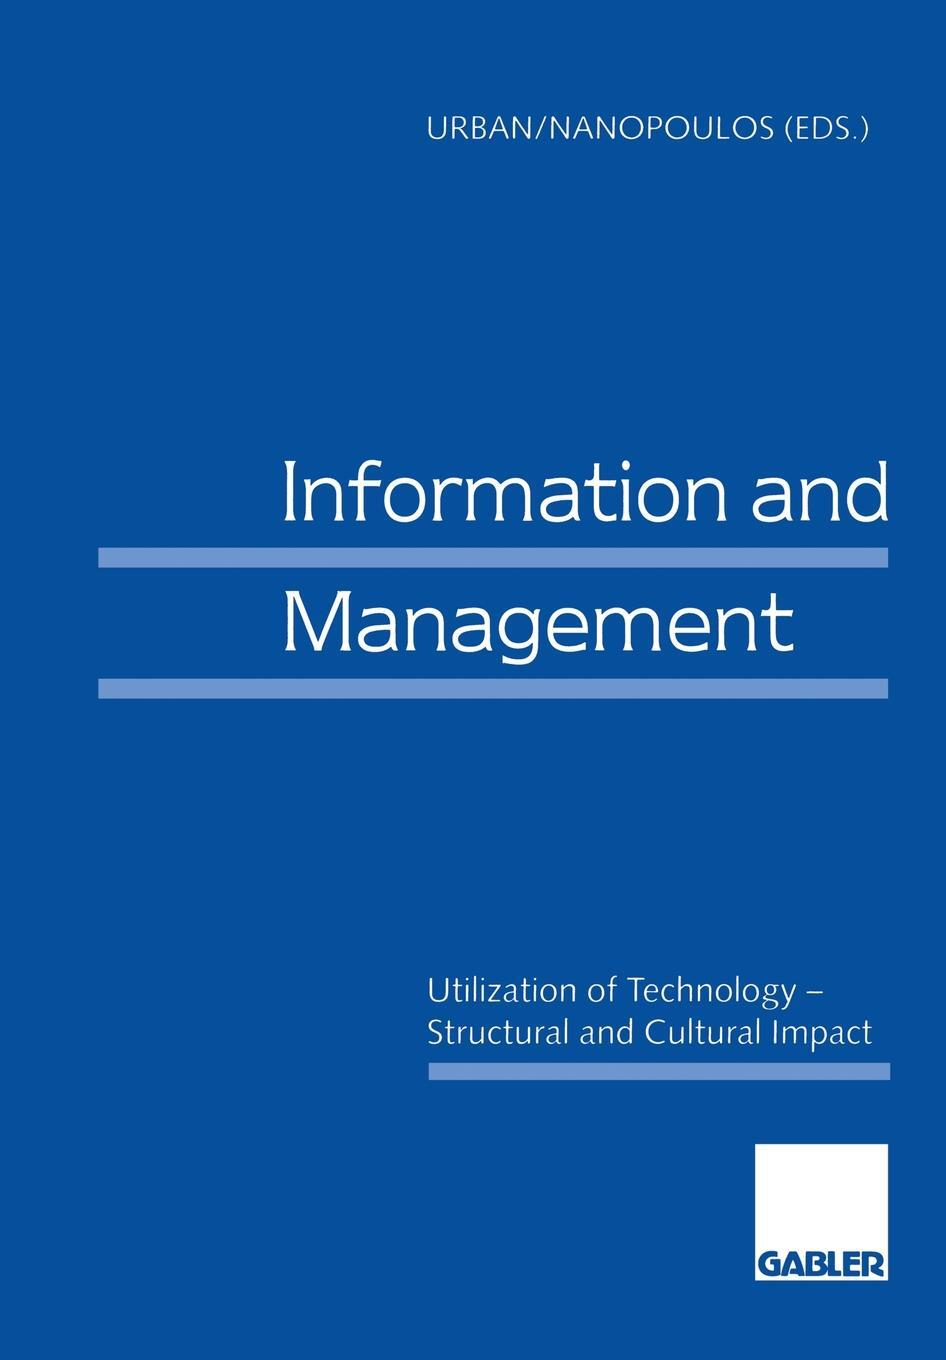 Information and Management. Utilization of Technology - Structural and Cultural Impact. Sabine Urban, Constantin (Eds.) Nanopoulos